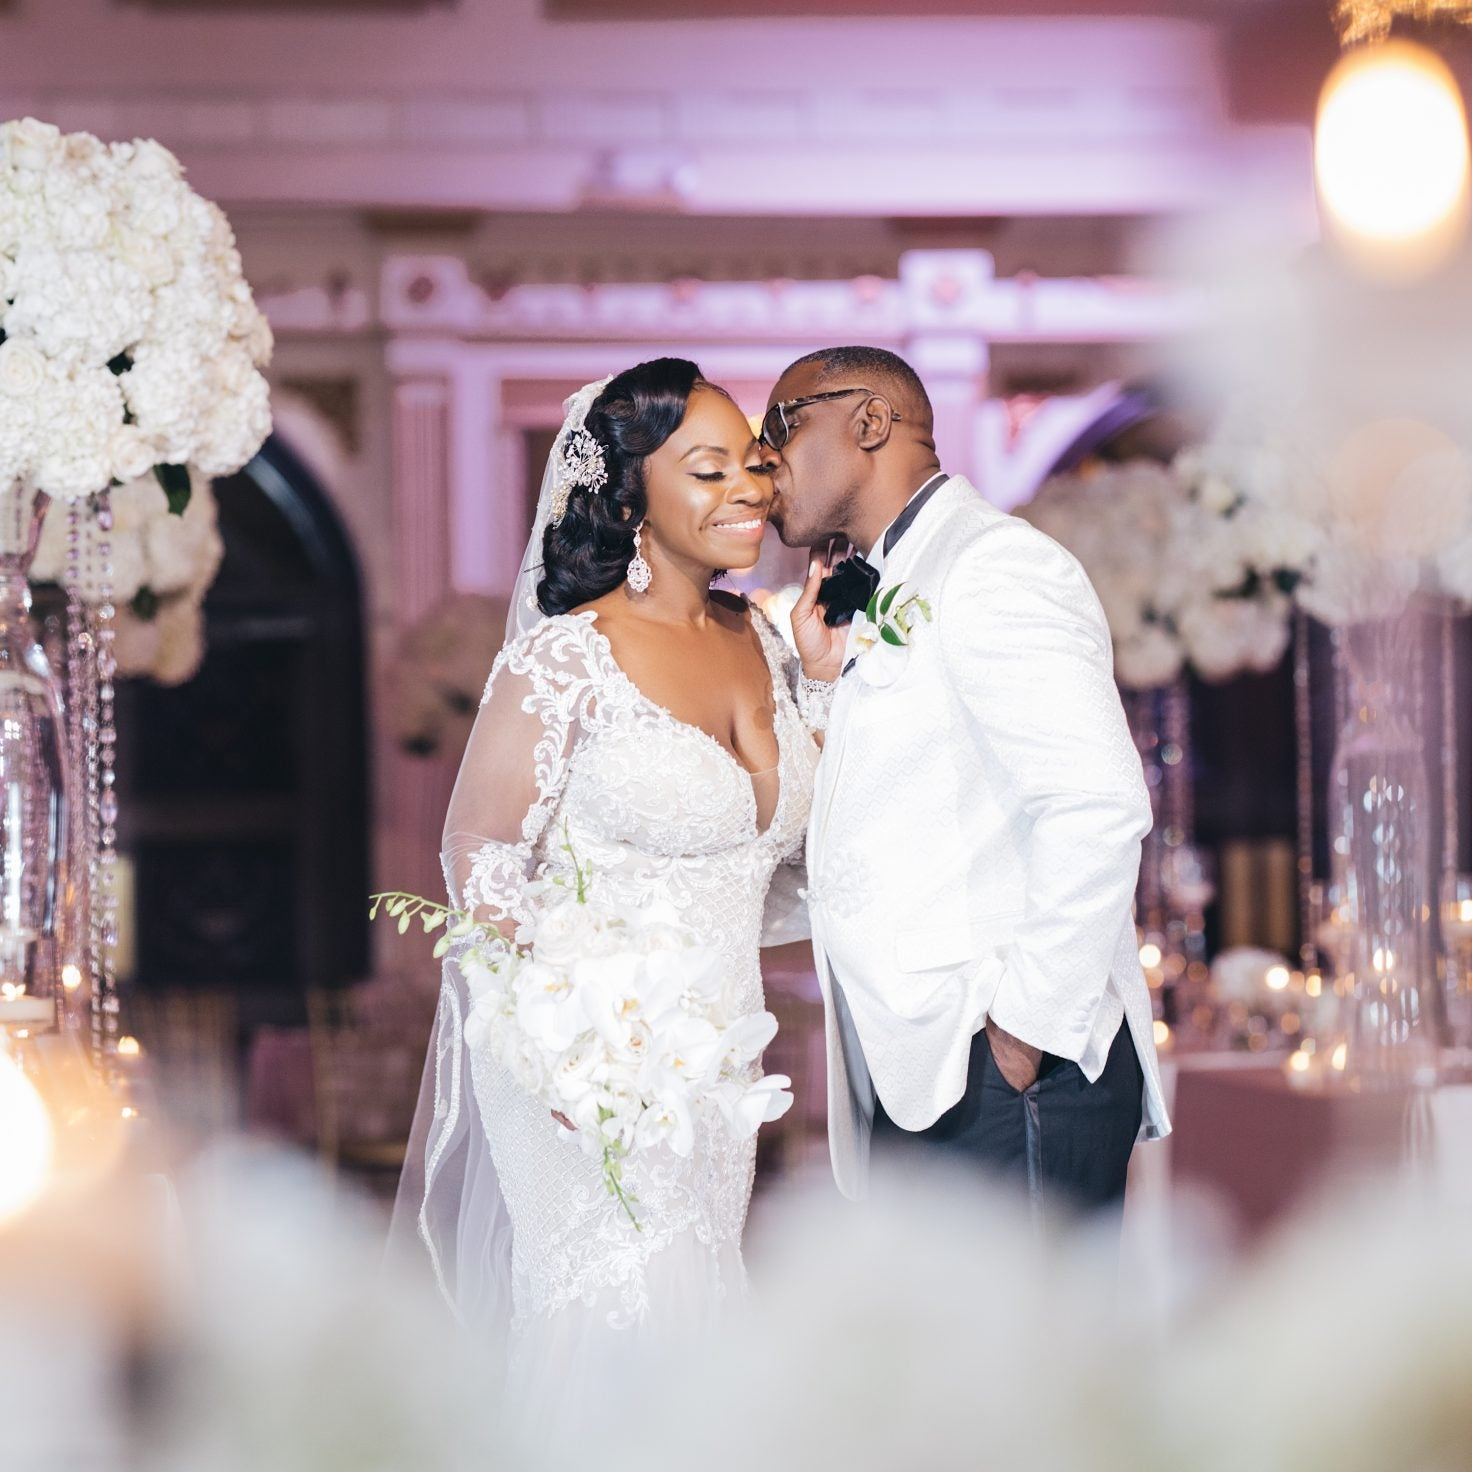 Bridal Bliss: Mia And William Had Plenty Surprises At Their Upscale Glam Wedding